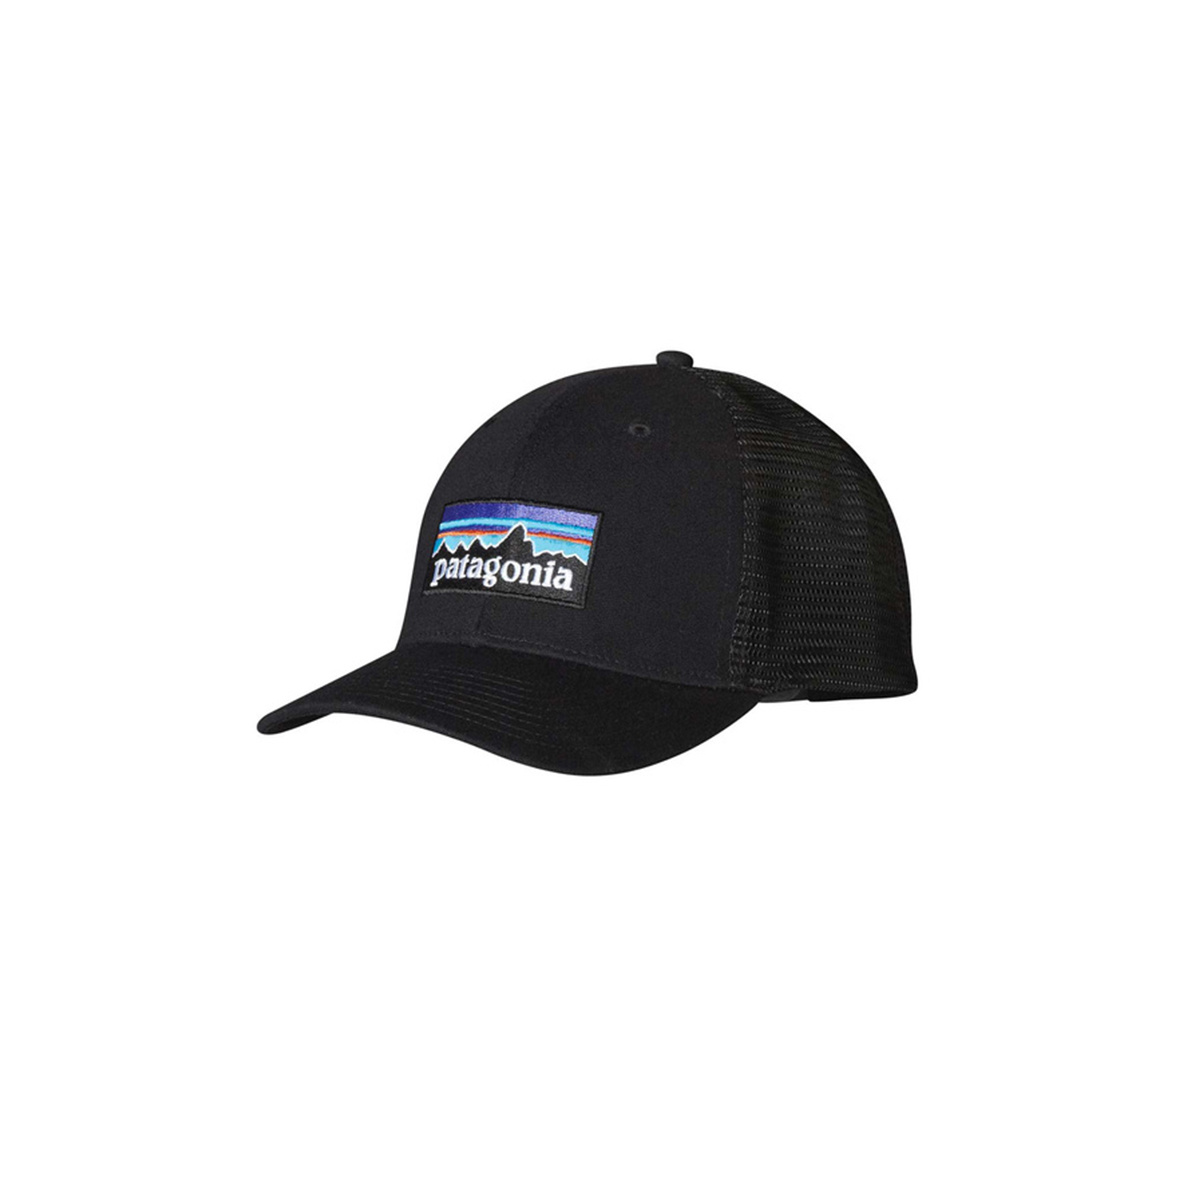 152f0030a17b6 Patagonia P-6 Logo LoPro Trucker Hat - Gearhead Outfitters